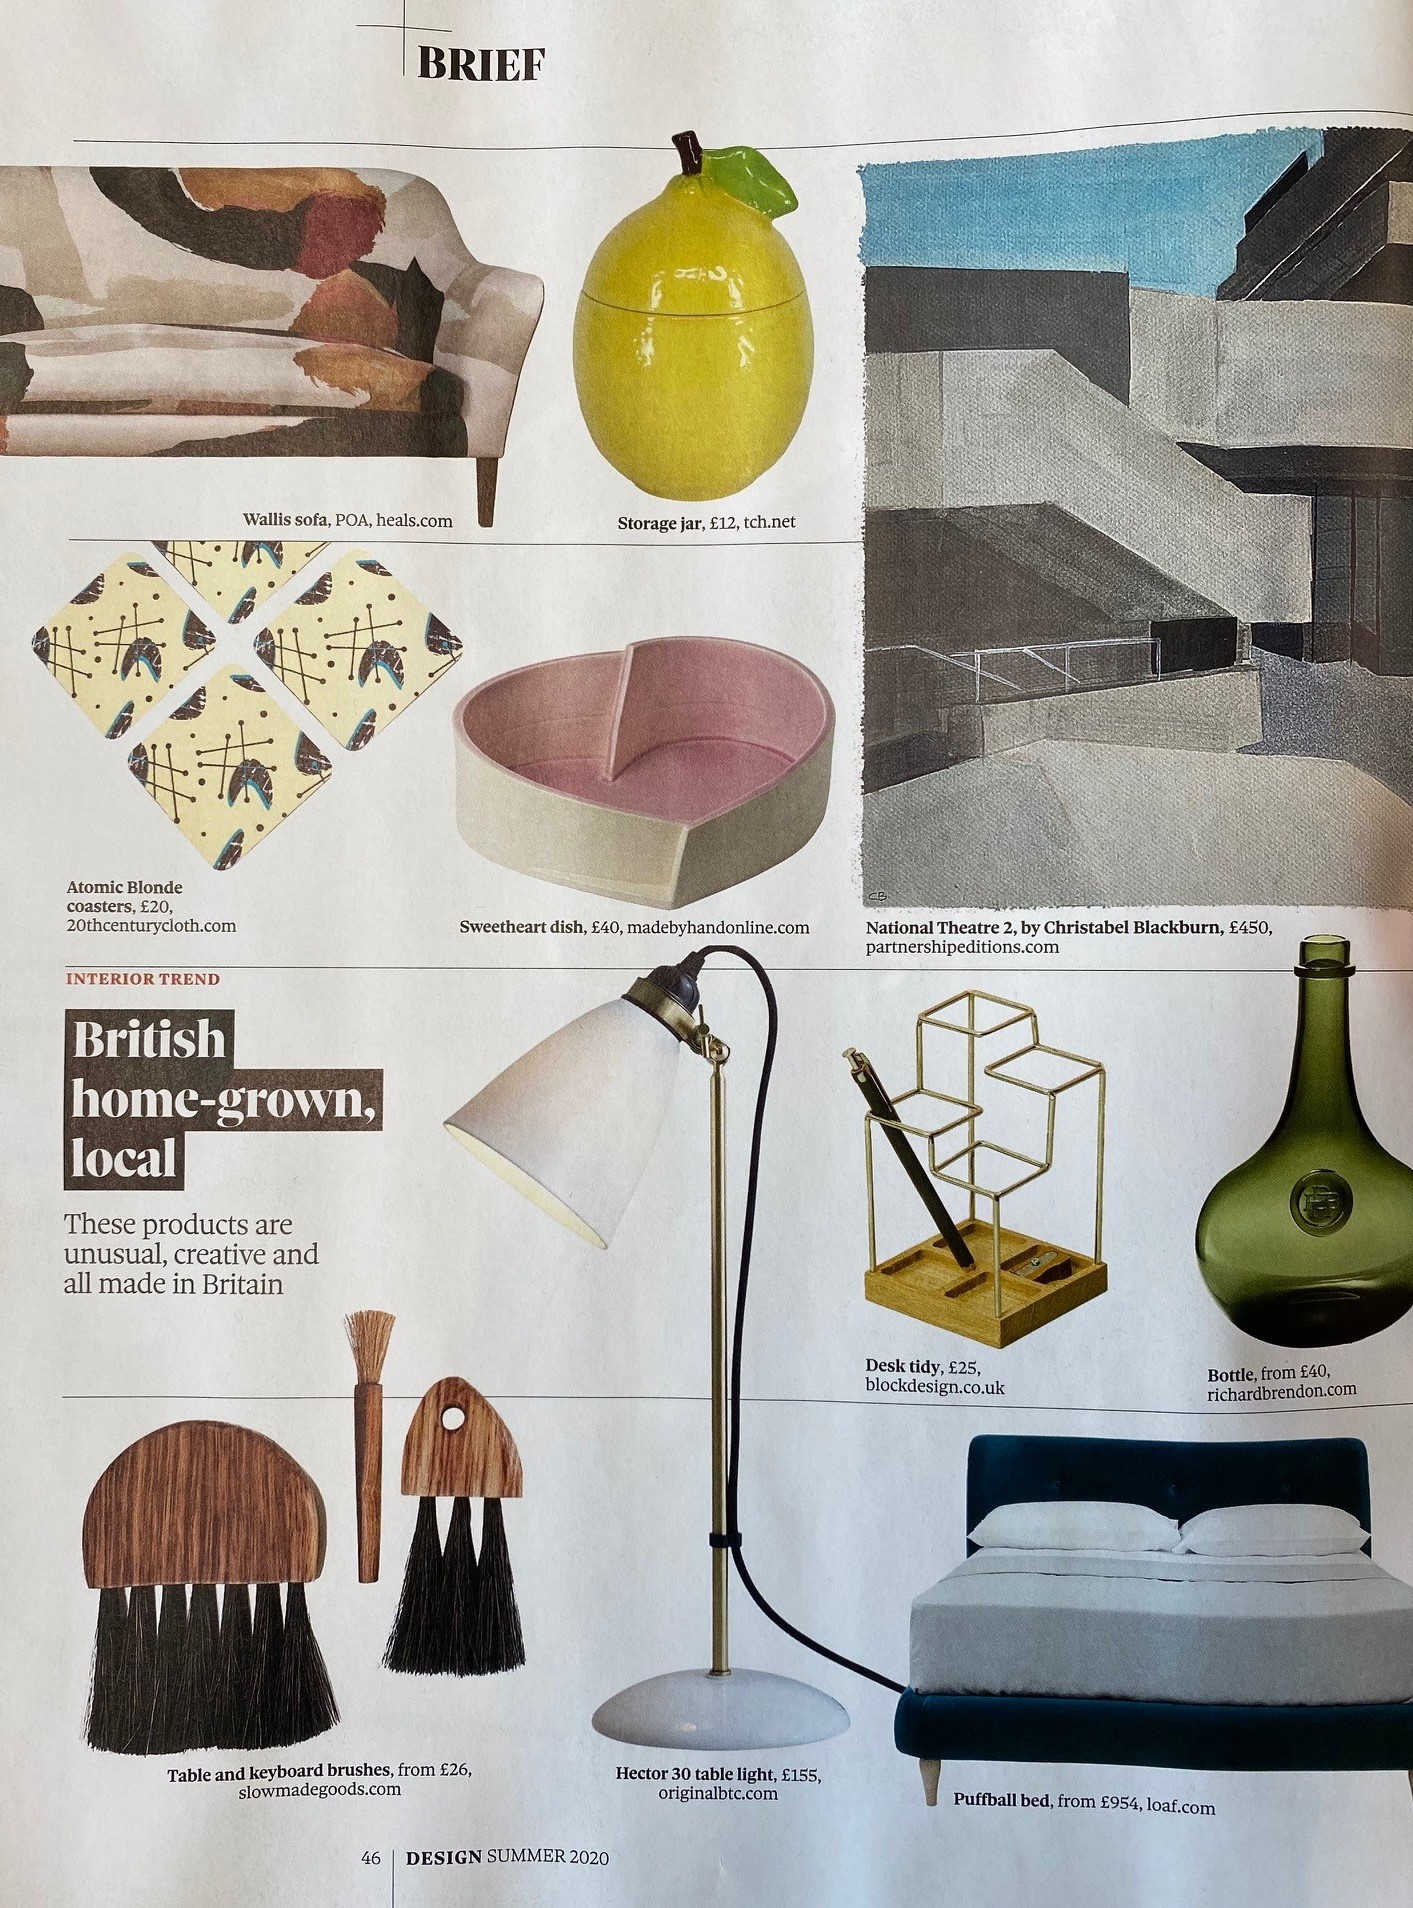 Original BTC's Hector 30 table light representing home grown talent in The Observer's Design supplement